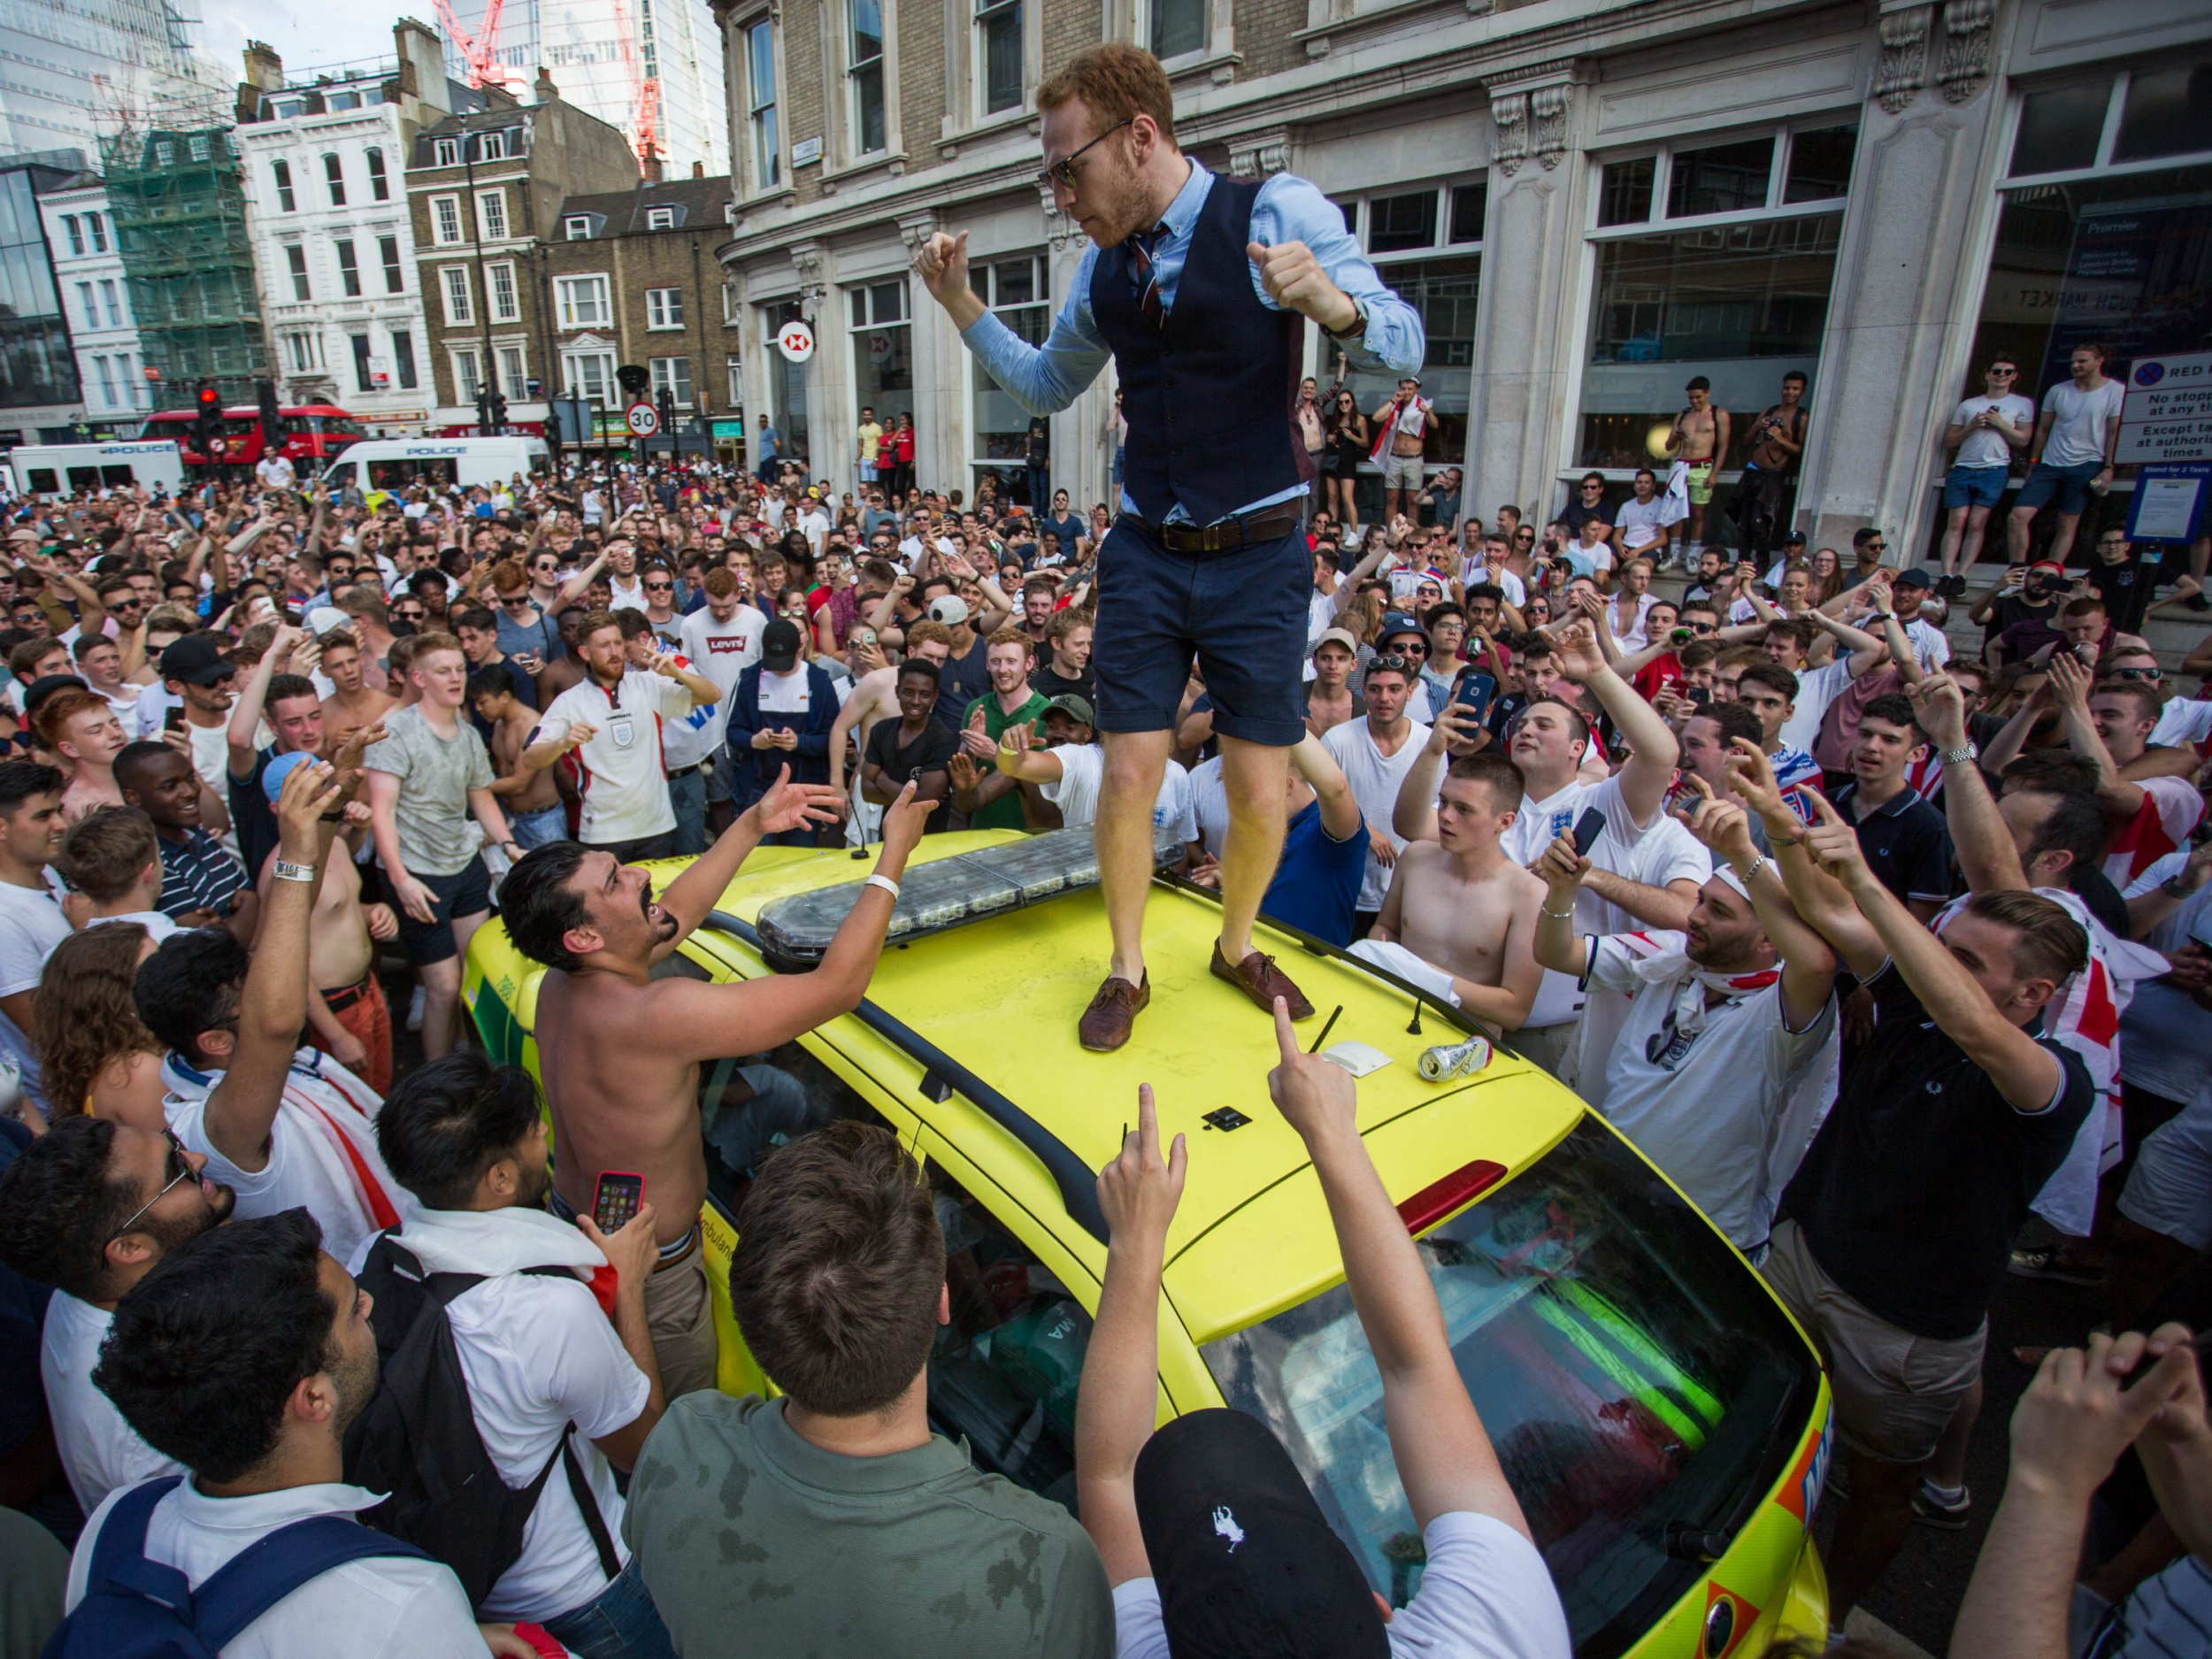 Football fans celebrate England's World Cup victory over Sweden in the quarter finals of the 2018 FIFA World Cup at London Bridge. An ambulance was trashed by fans with sporadic outbreaks of fighting in side streets. Featuring: Atmosphere, View Where: London, England, United Kingdom When: 07 Jul 2018 Credit: Wheatley/WENN